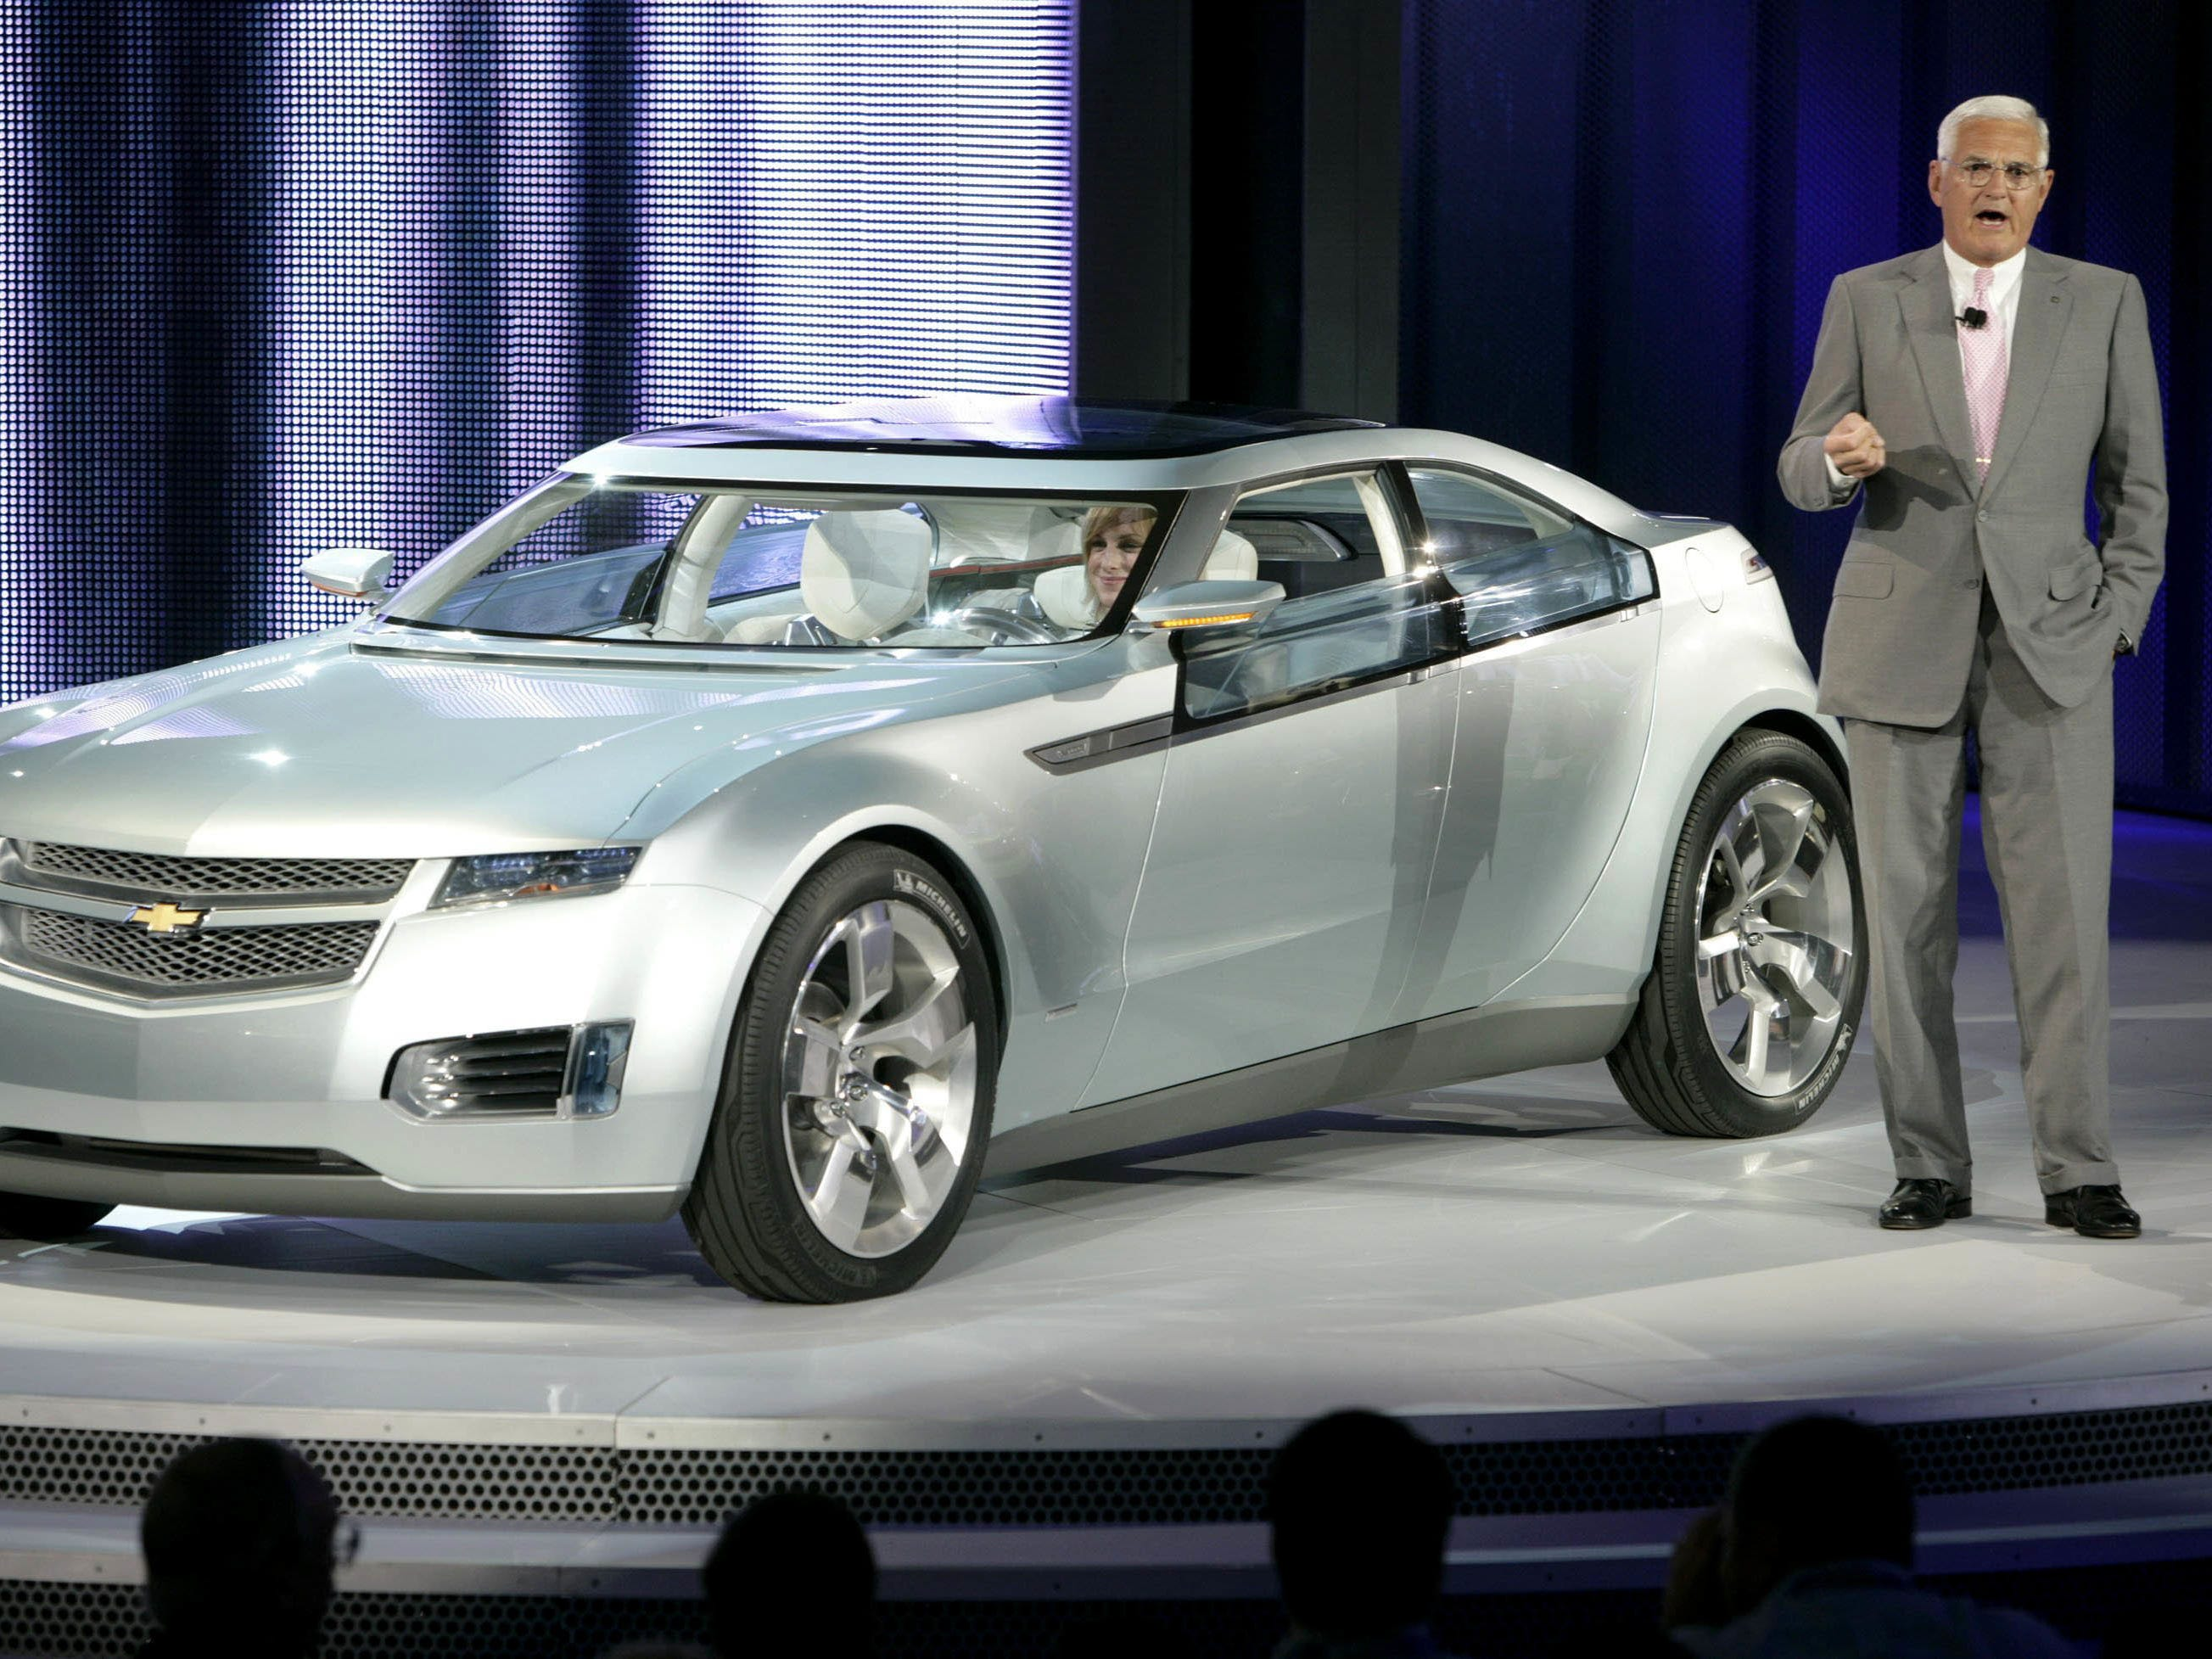 GM Vice Chairman Bob Lutz introduces the Chevrolet Volt electric concept at the North American International Auto Show in January 2007 in Detroit.